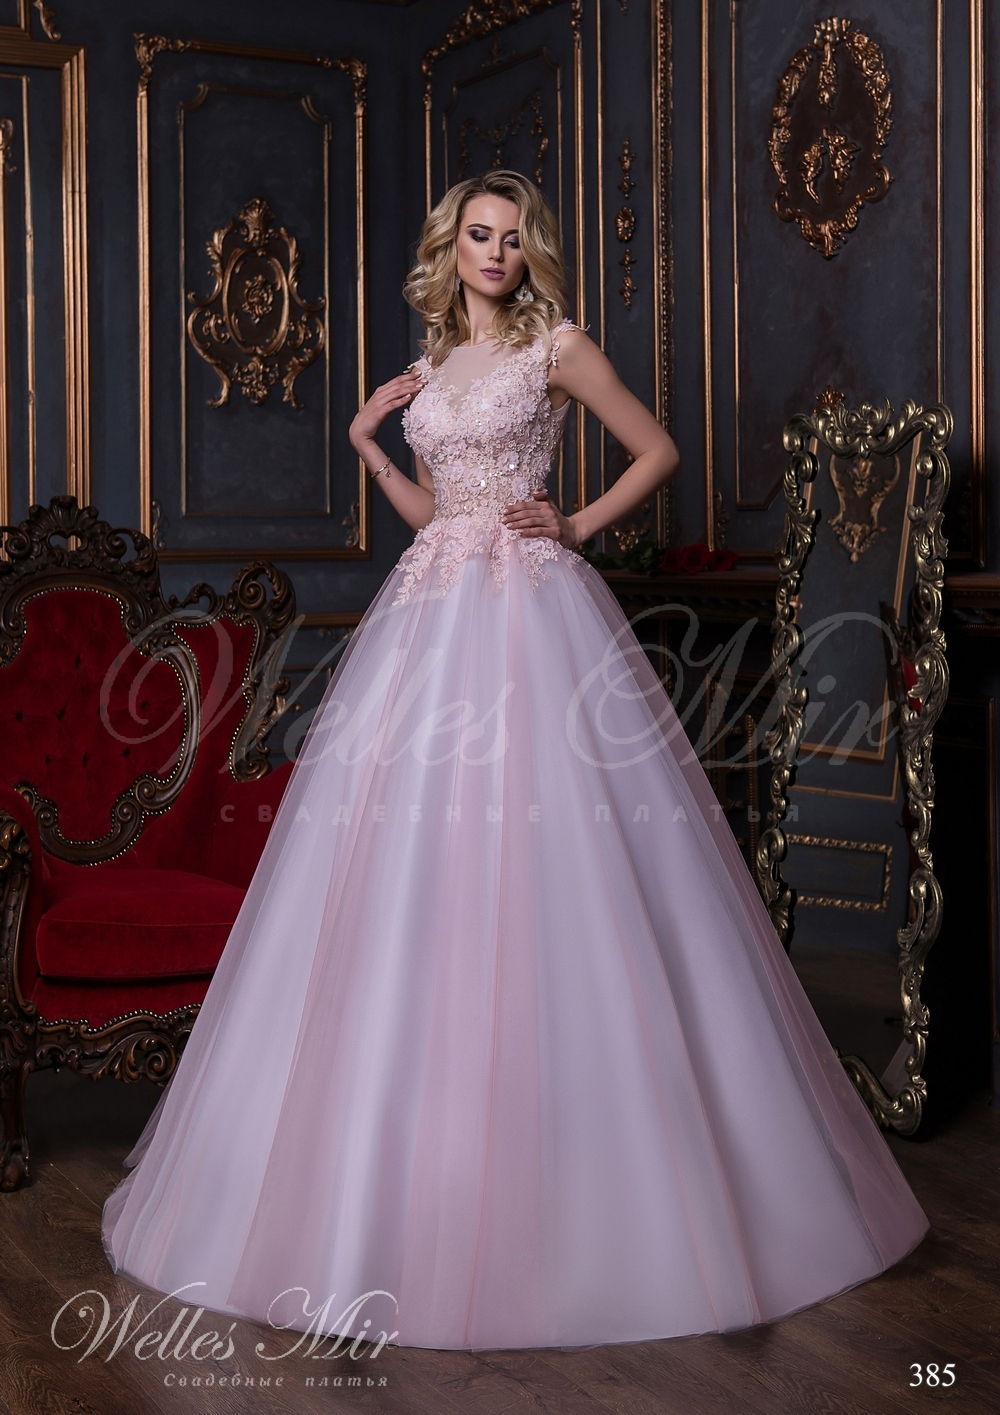 Luxury collection 2017-2018 - 385